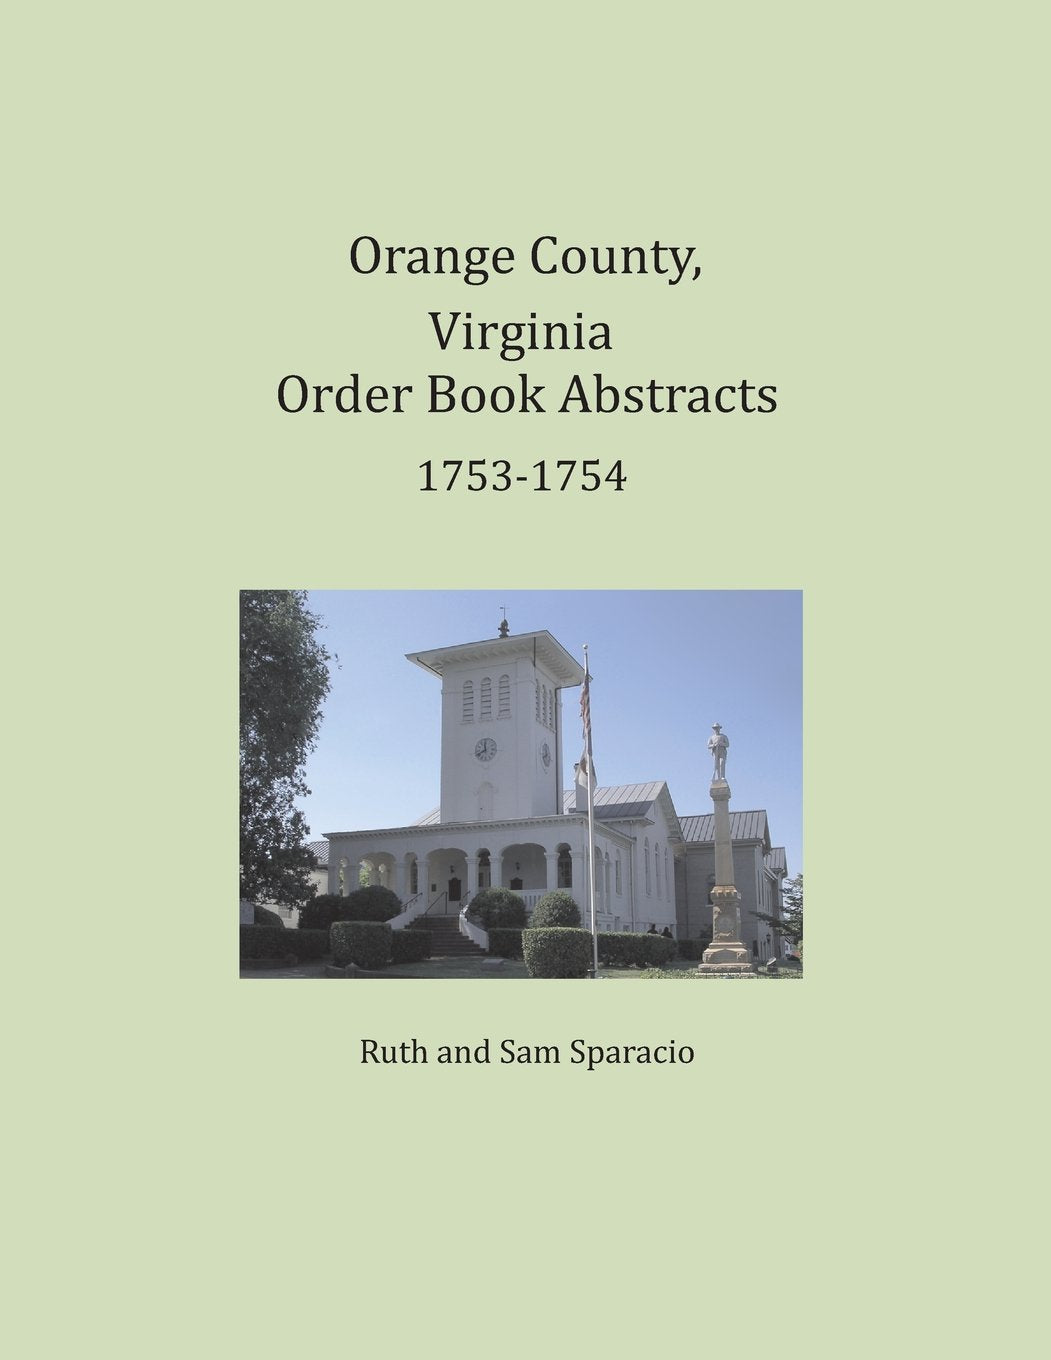 Orange County, Virginia Order Book Abstracts 1753-1754